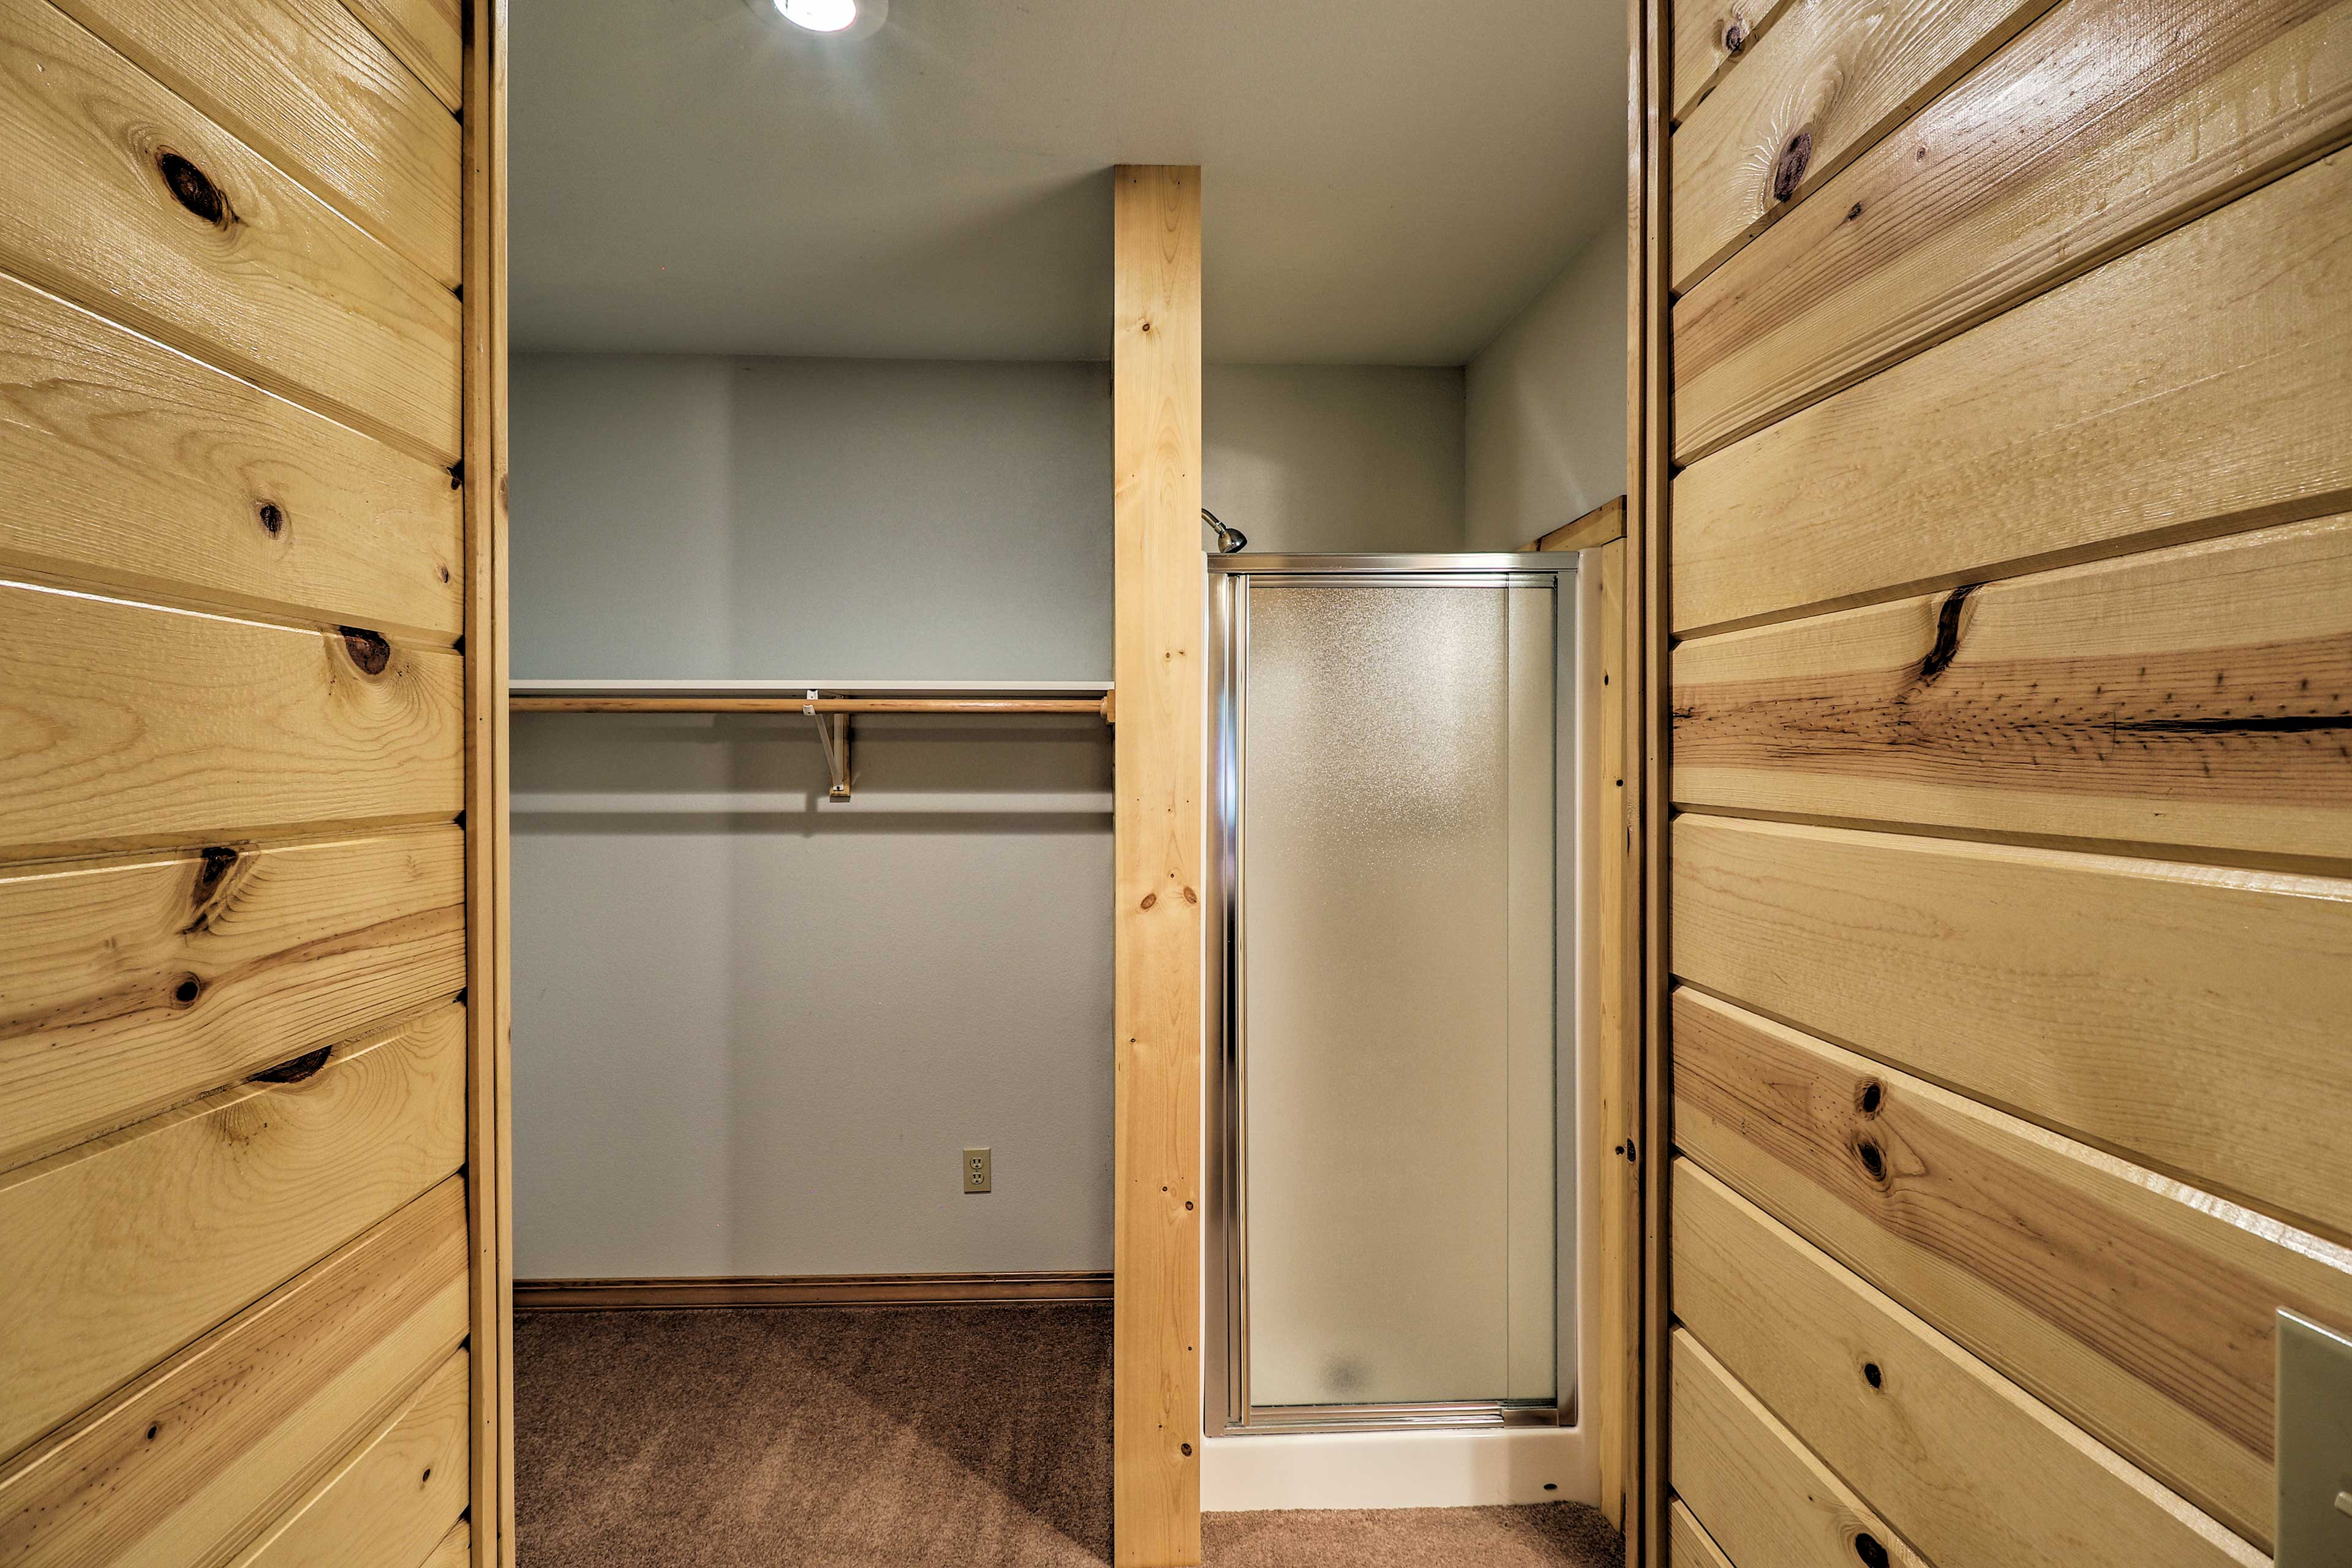 The closet space has a walk-in shower.